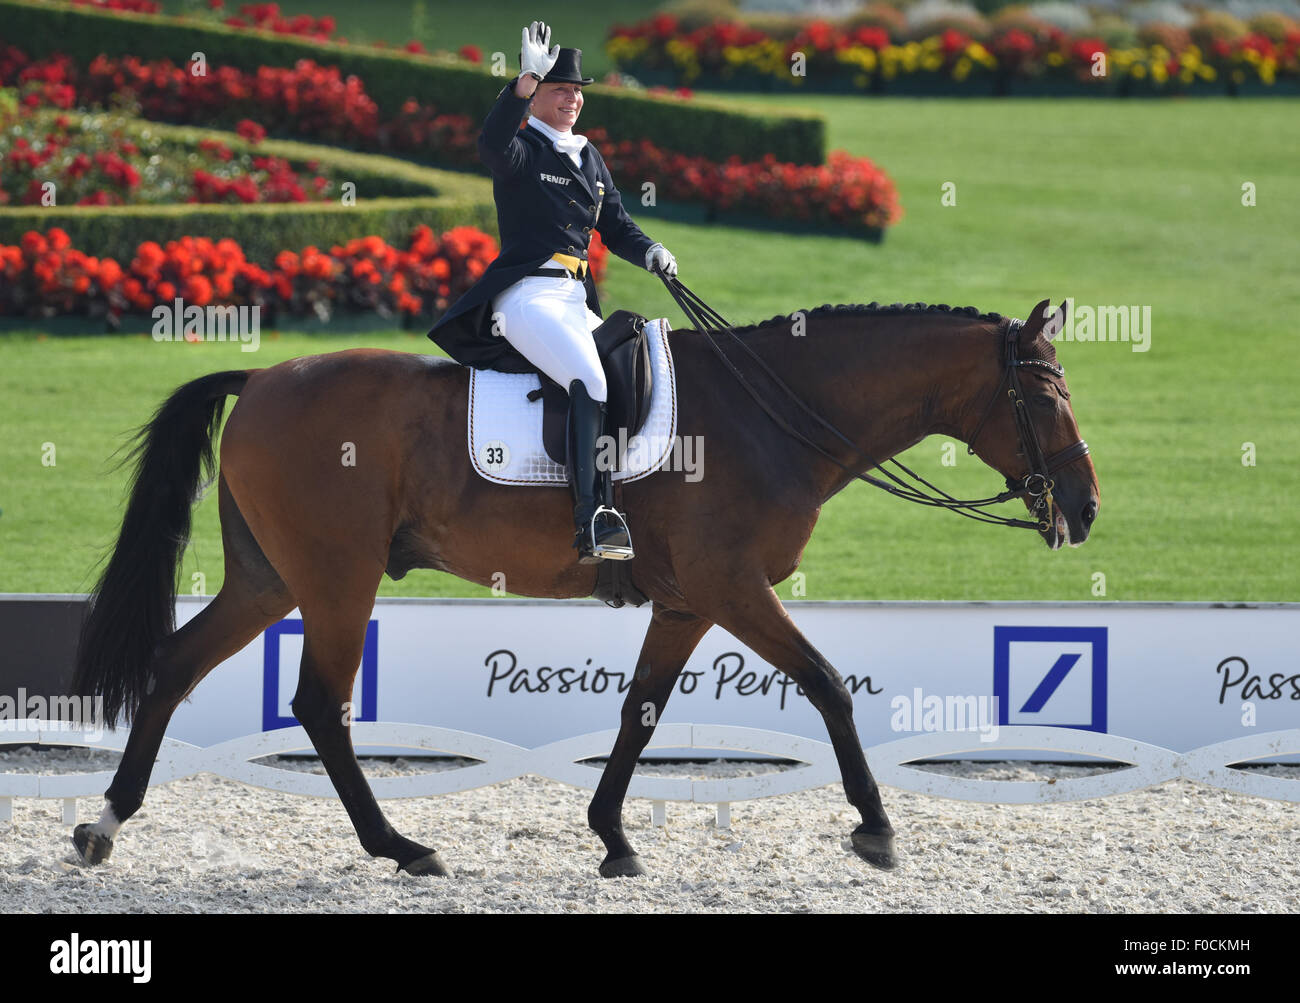 Aachen, Germany  12th Aug, 2015  Isabell Werth of Germany